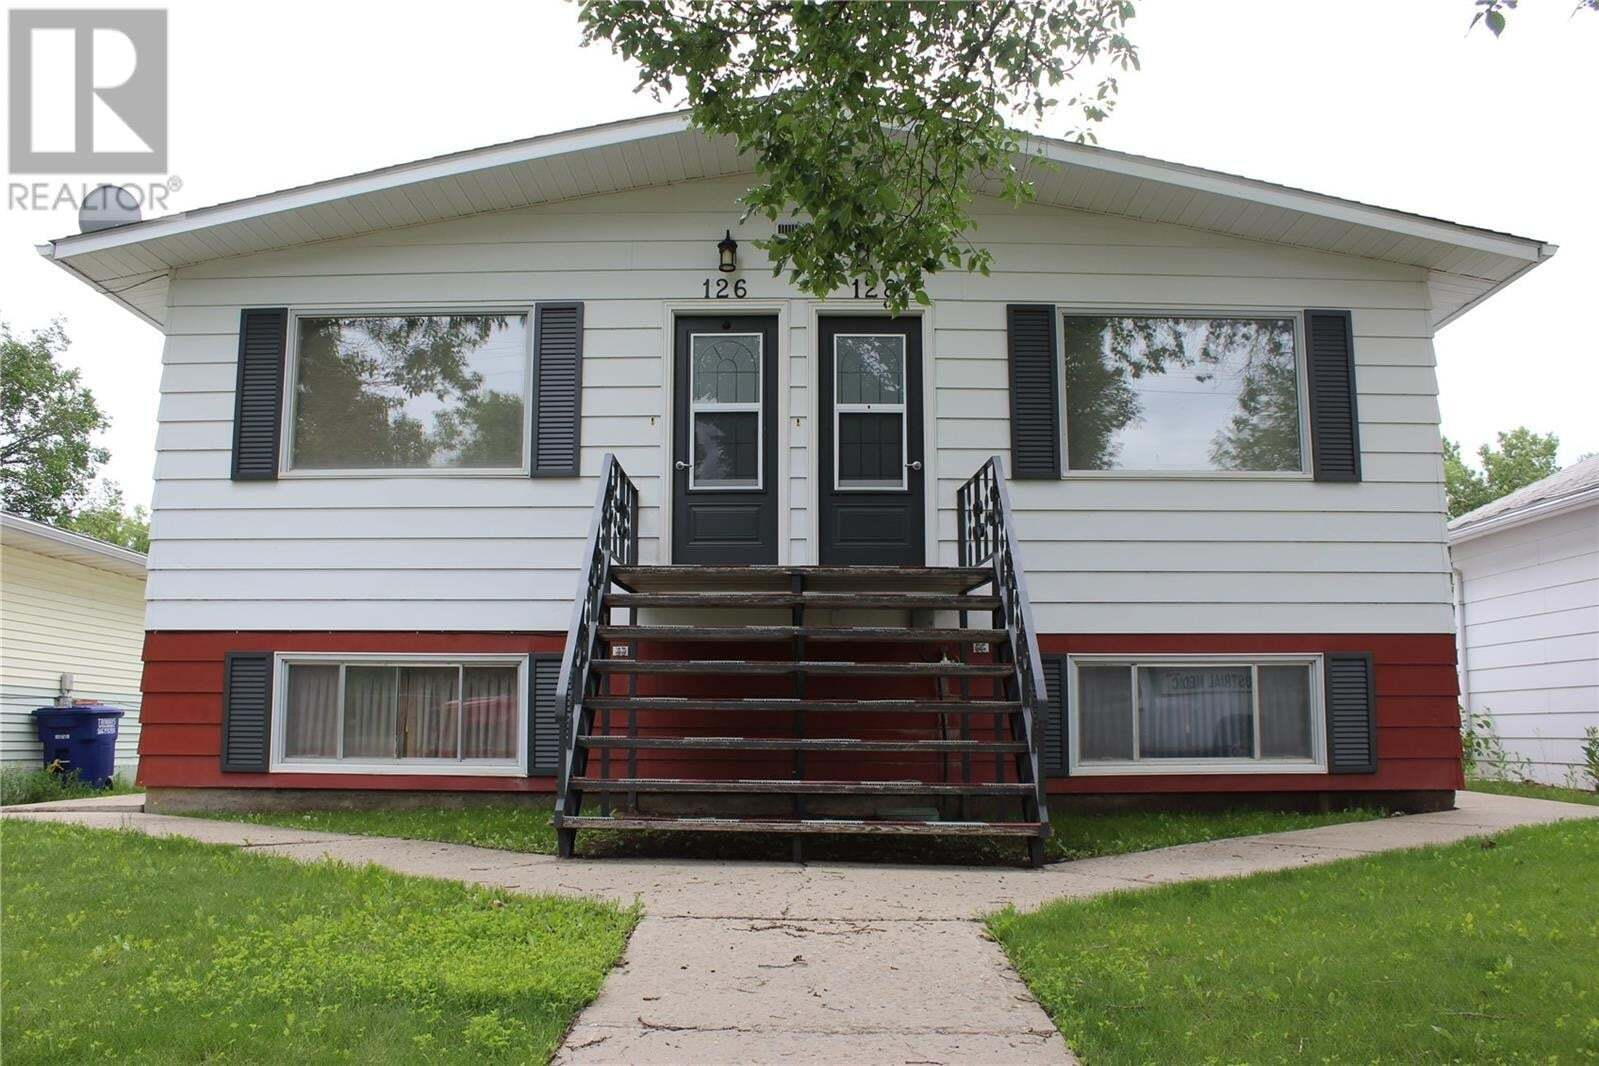 House for sale at 128 5th Ave W Unit 126 Shaunavon Saskatchewan - MLS: SK818425